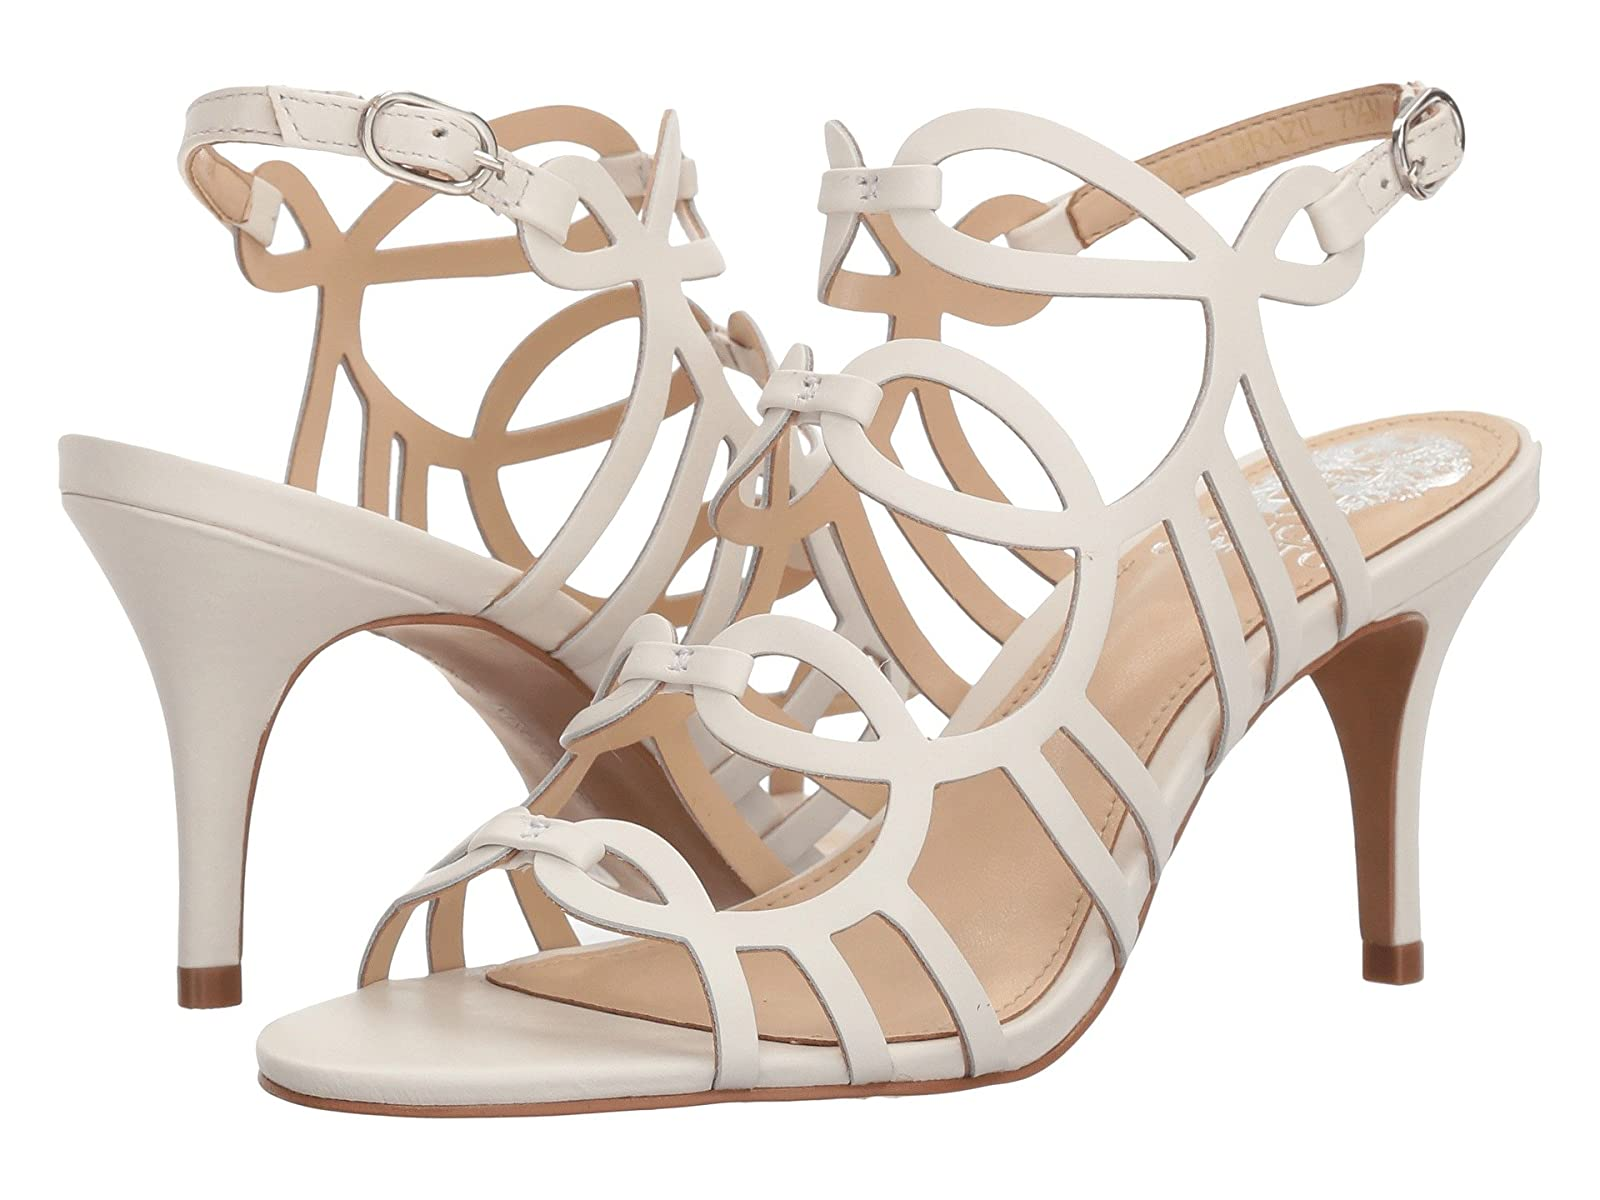 Vince Camuto PetinaCheap and distinctive eye-catching shoes